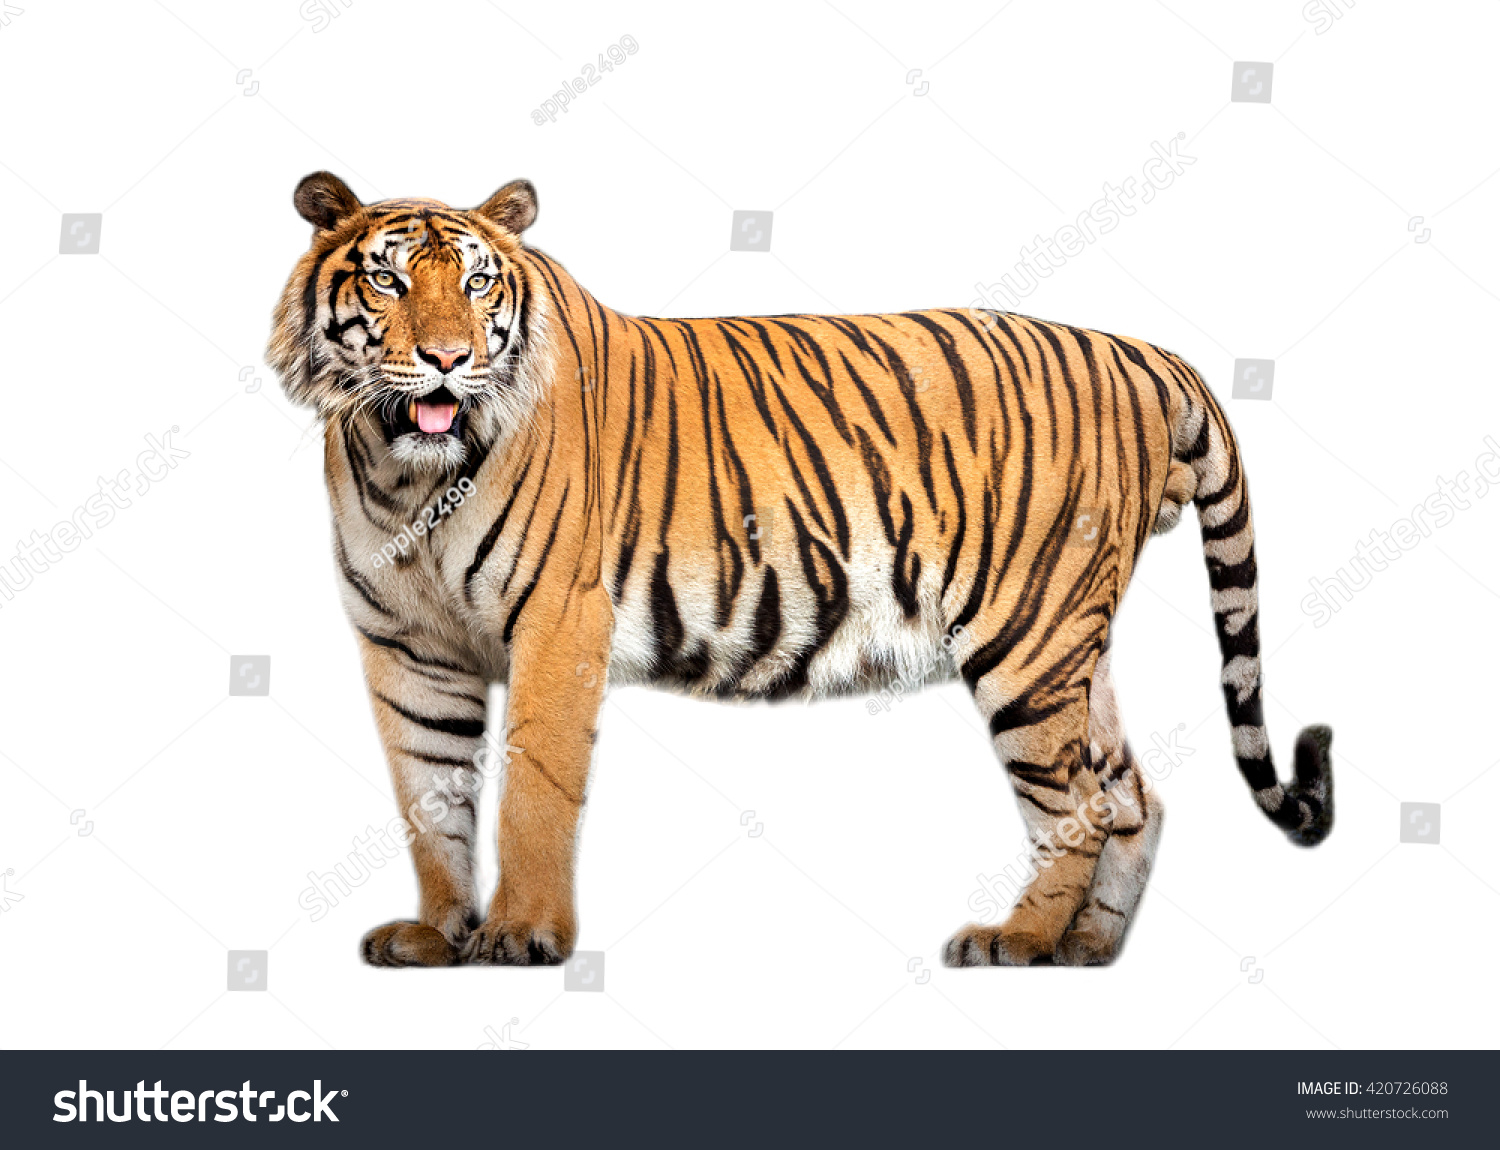 tiger action #420726088